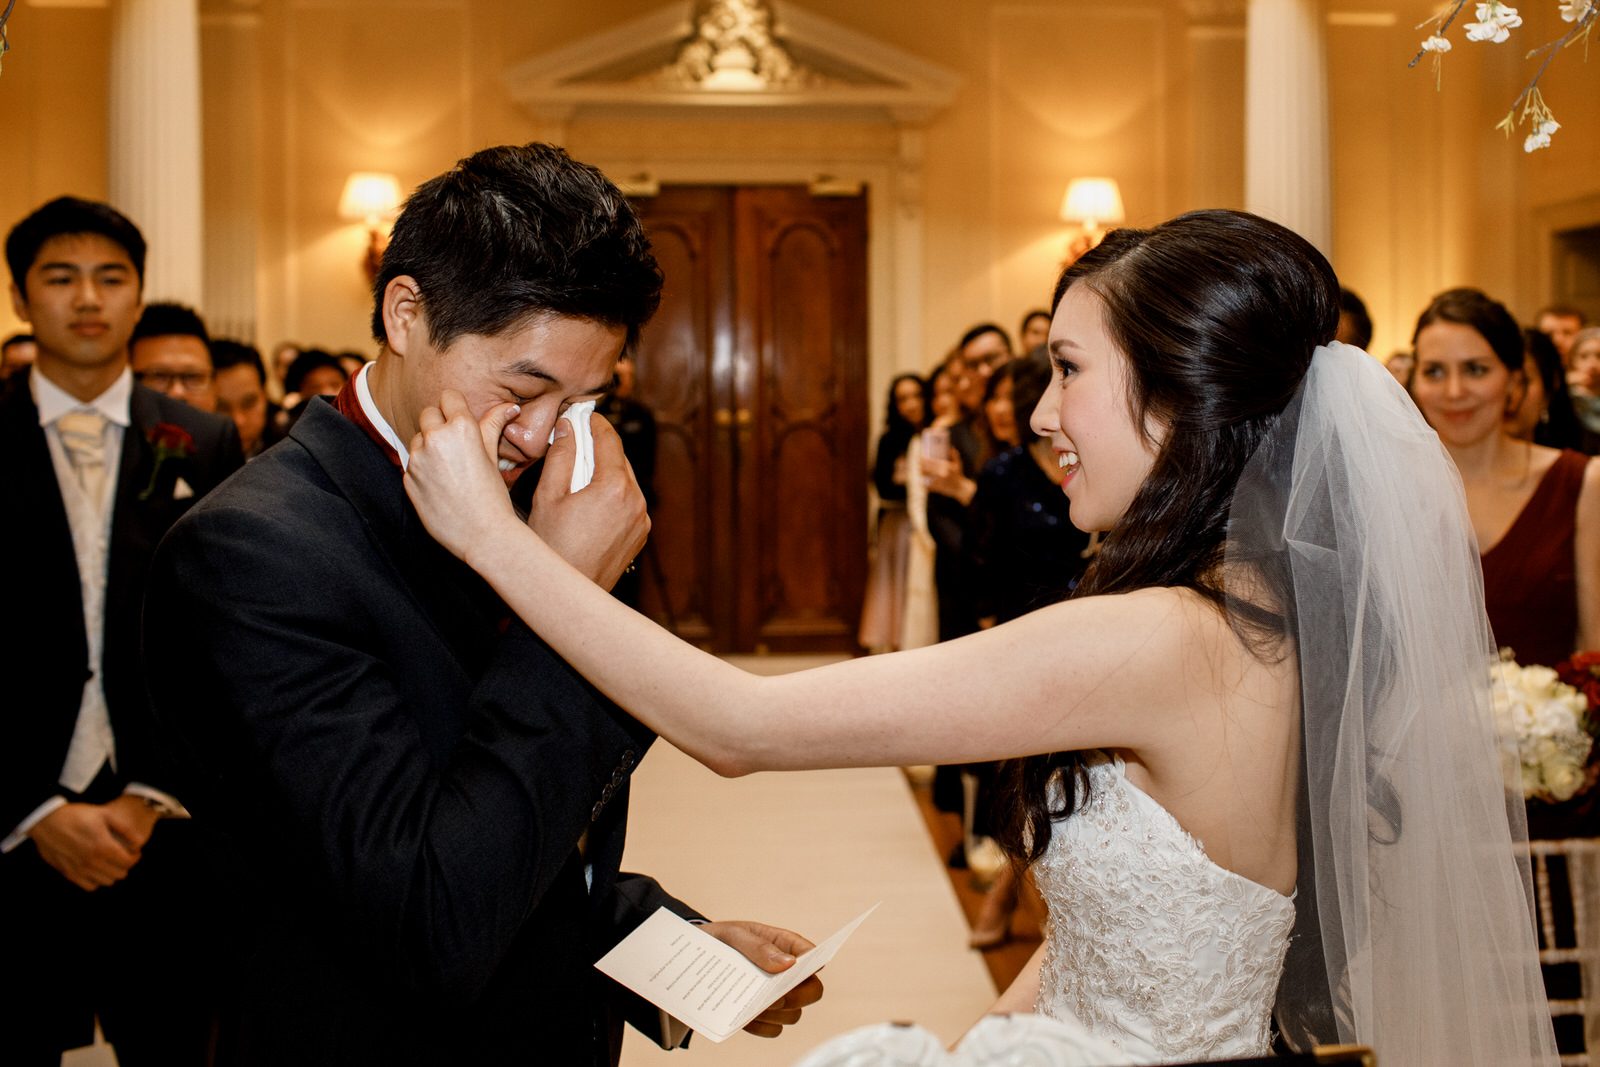 documentary wedding photograpy example of bride wiping tear from grooms eye